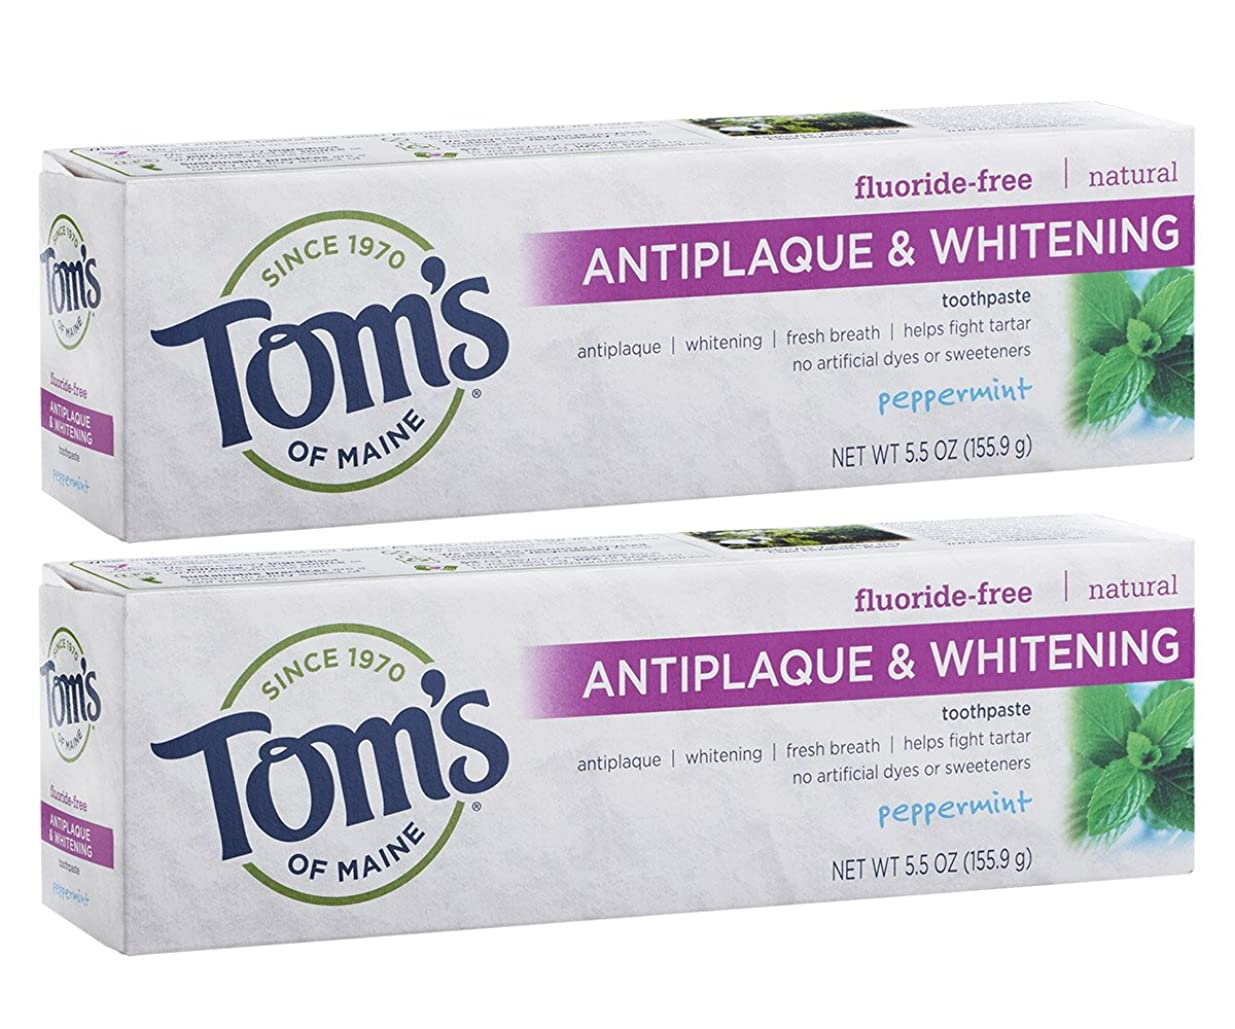 消す夫婦タイマーTom's of Maine Antiplaque And Whitening Fluoride-Free Toothpaste, Peppermint, 5.5-Ounce by Tom's of Maine